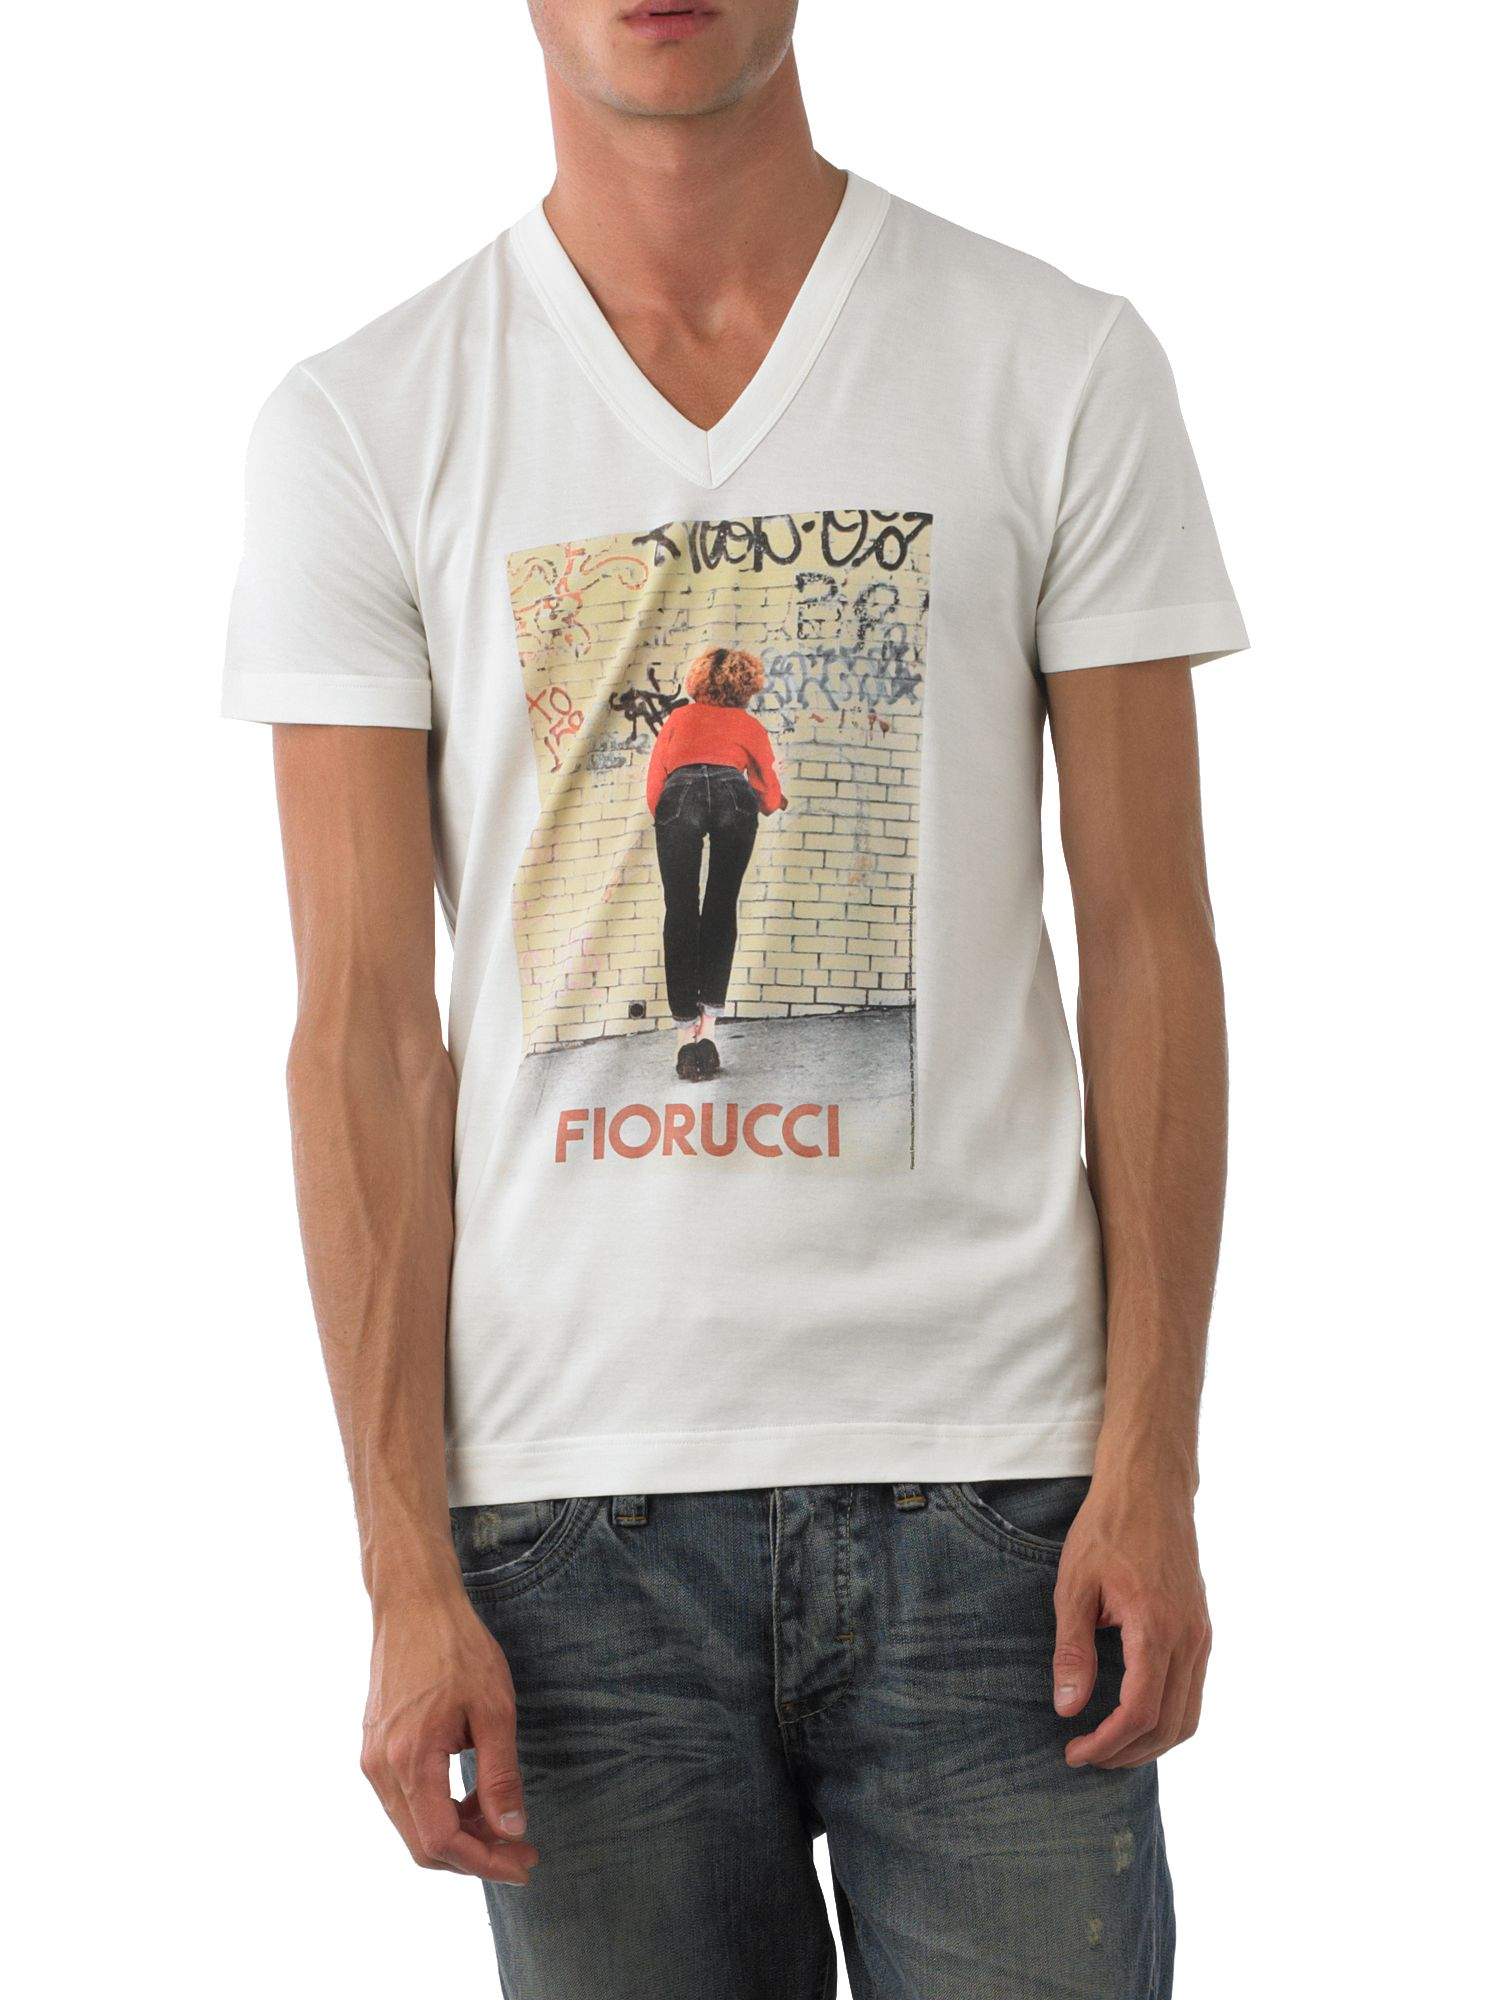 D&G V-neck fiorucci t-shirt White product image